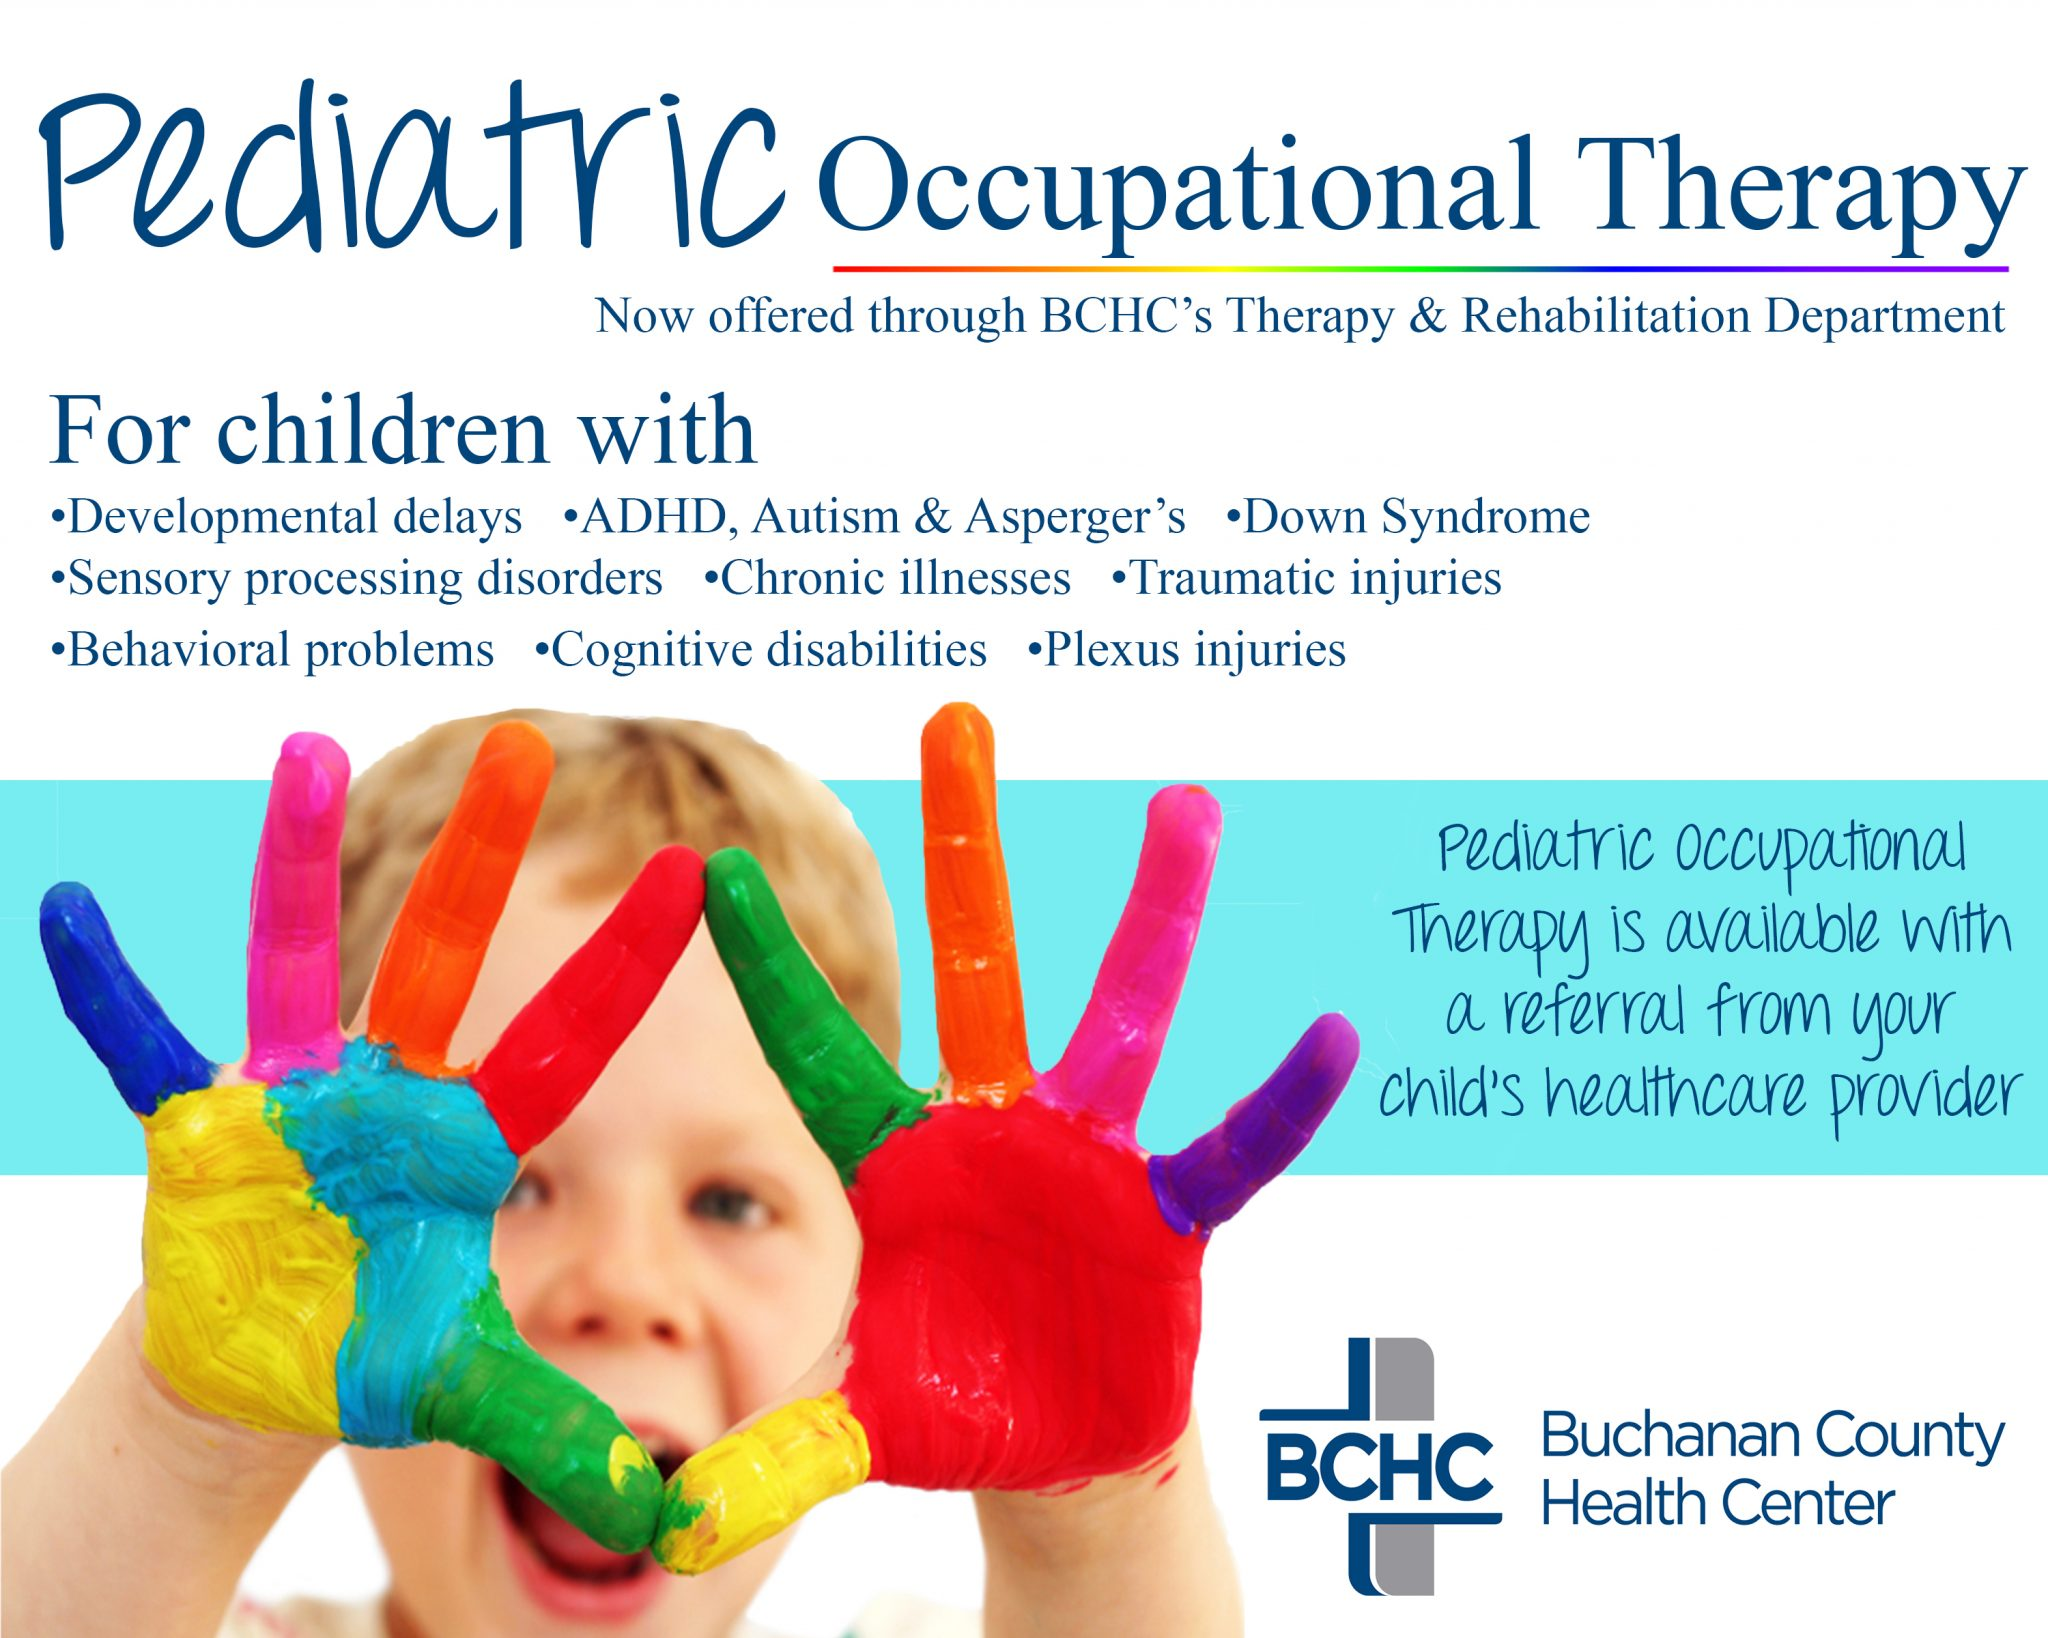 Buchanan County Health Center Now Offering Pediatric Occupational Therapy